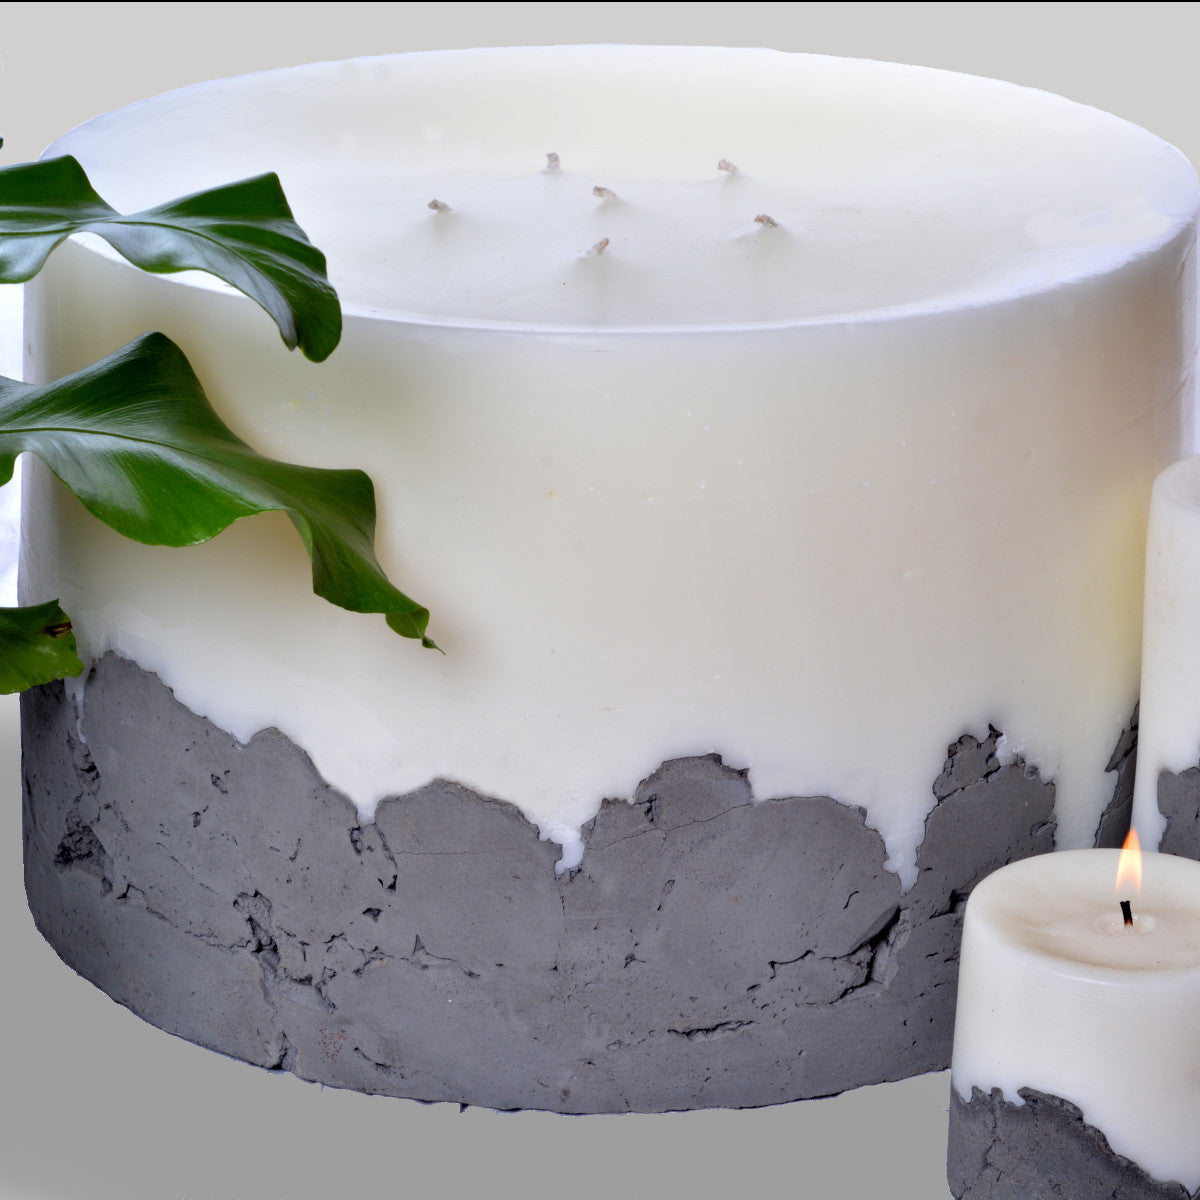 The Beast by Africandle. 400mm by 300mm, multi wick pillar candle set in a concrete base.